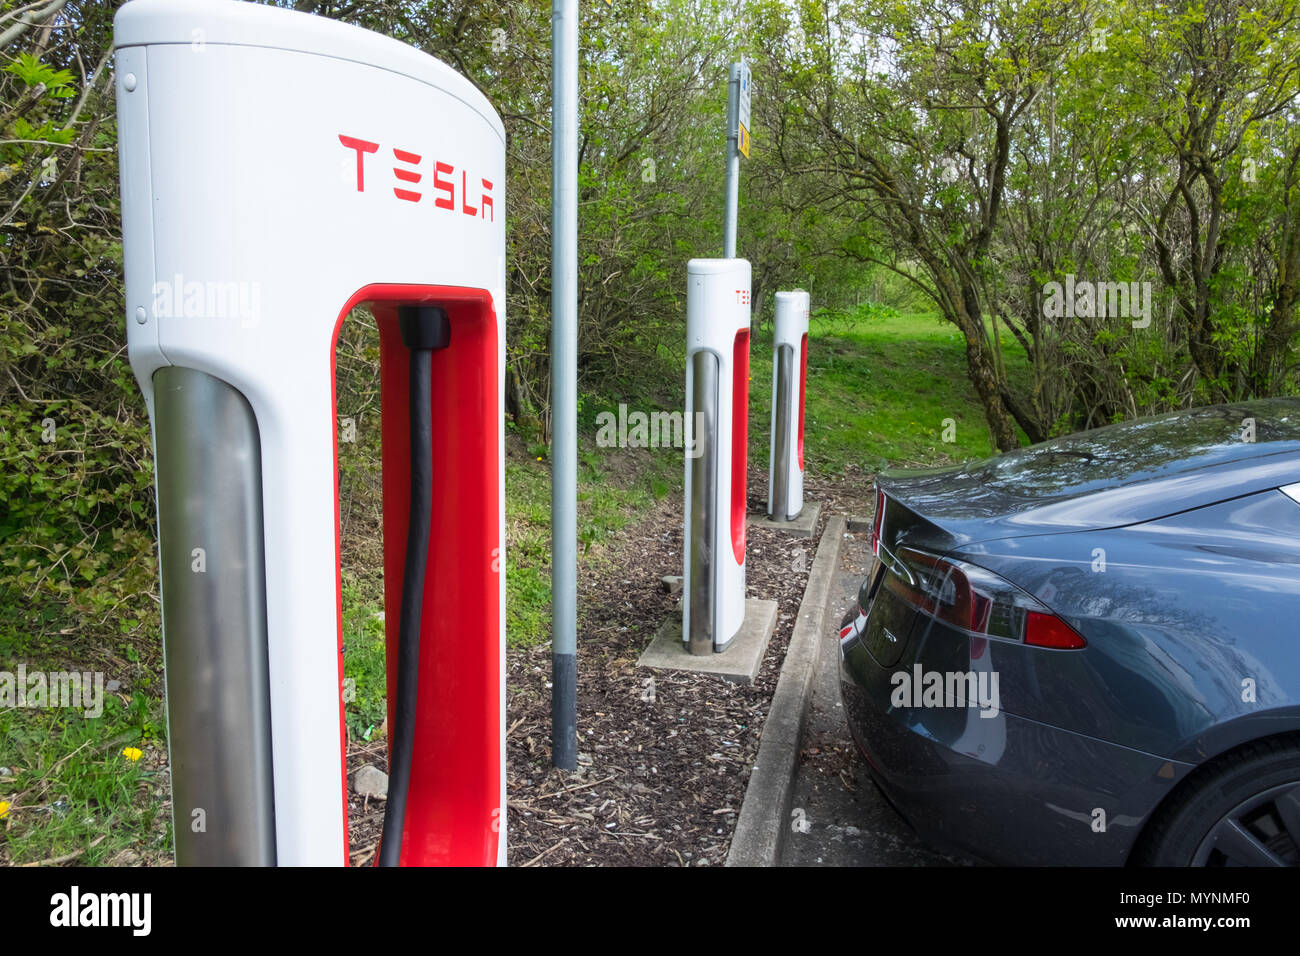 Tesla car next to supercharger at service area in UK - Stock Image